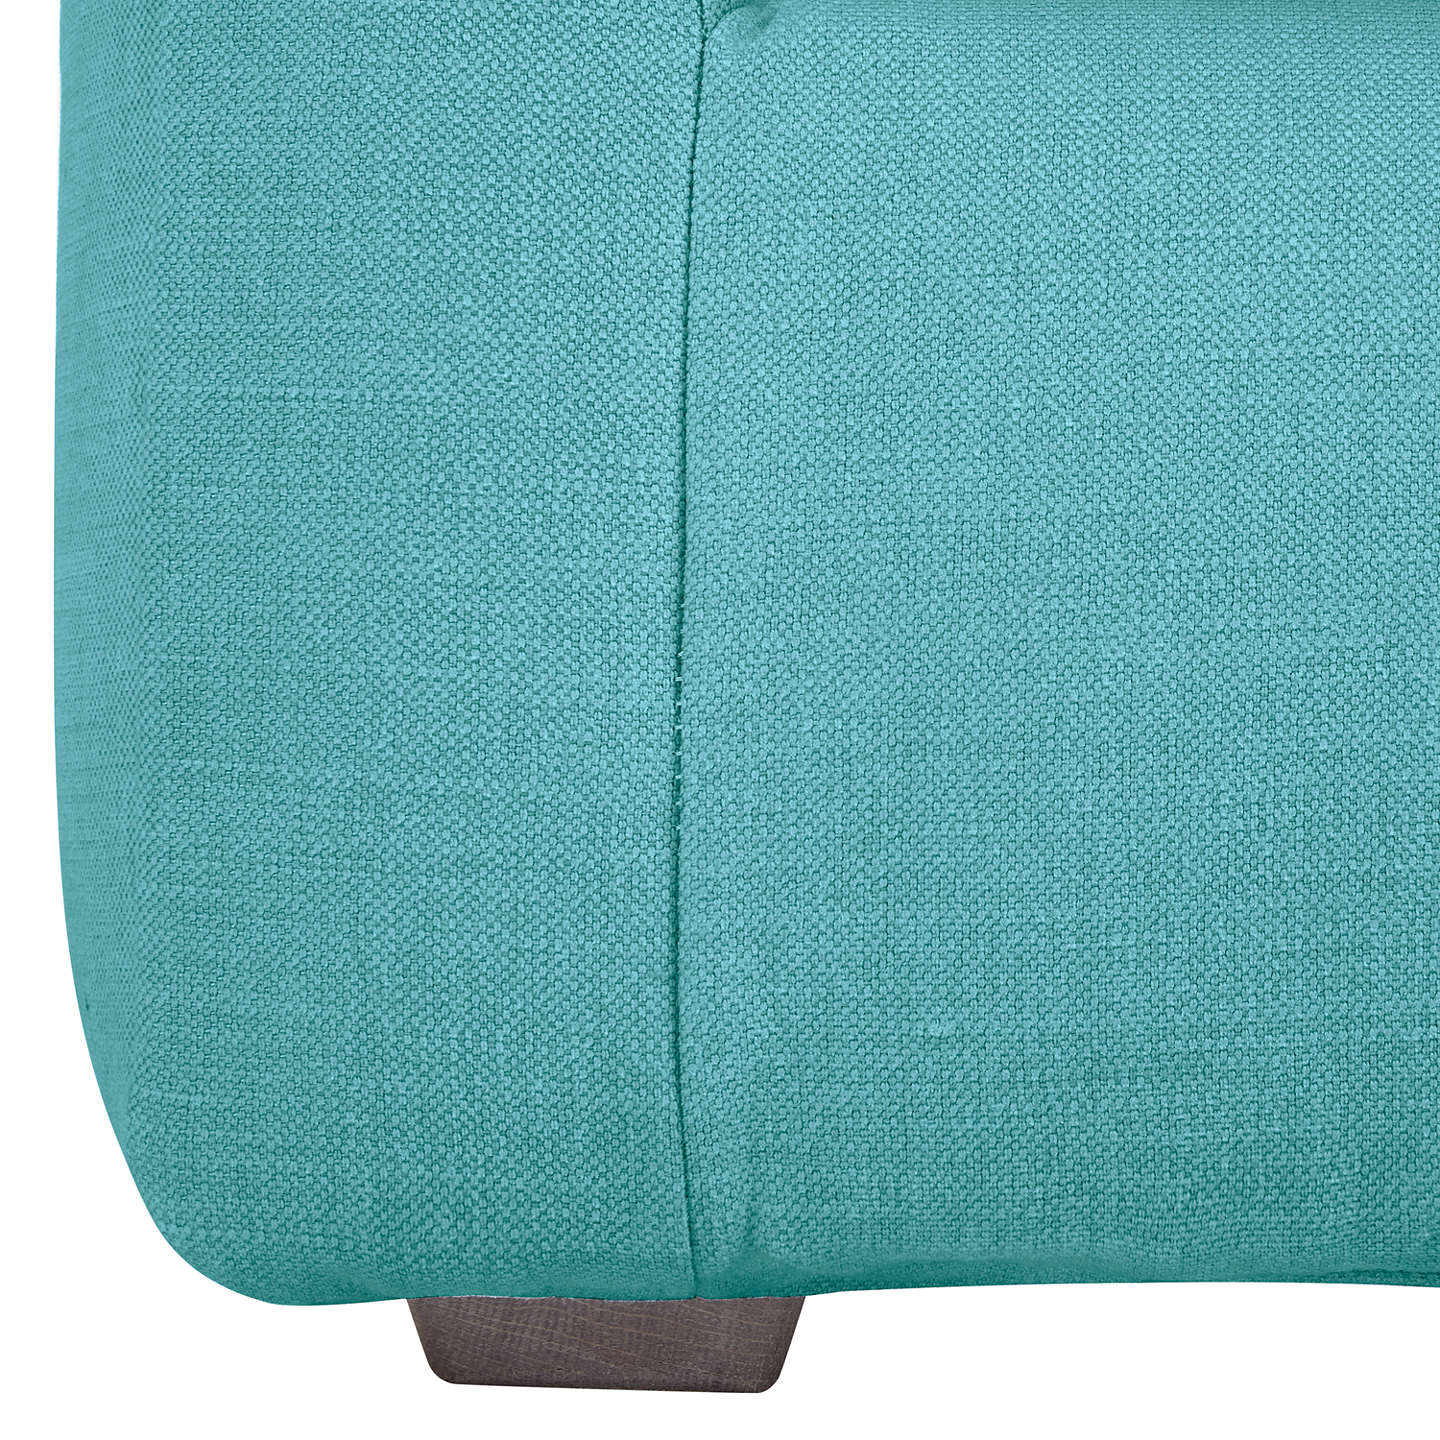 BuyFloppy Jo Snuggler by Loaf at John Lewis in Brushed Cotton Peacock, Light Leg Online at johnlewis.com